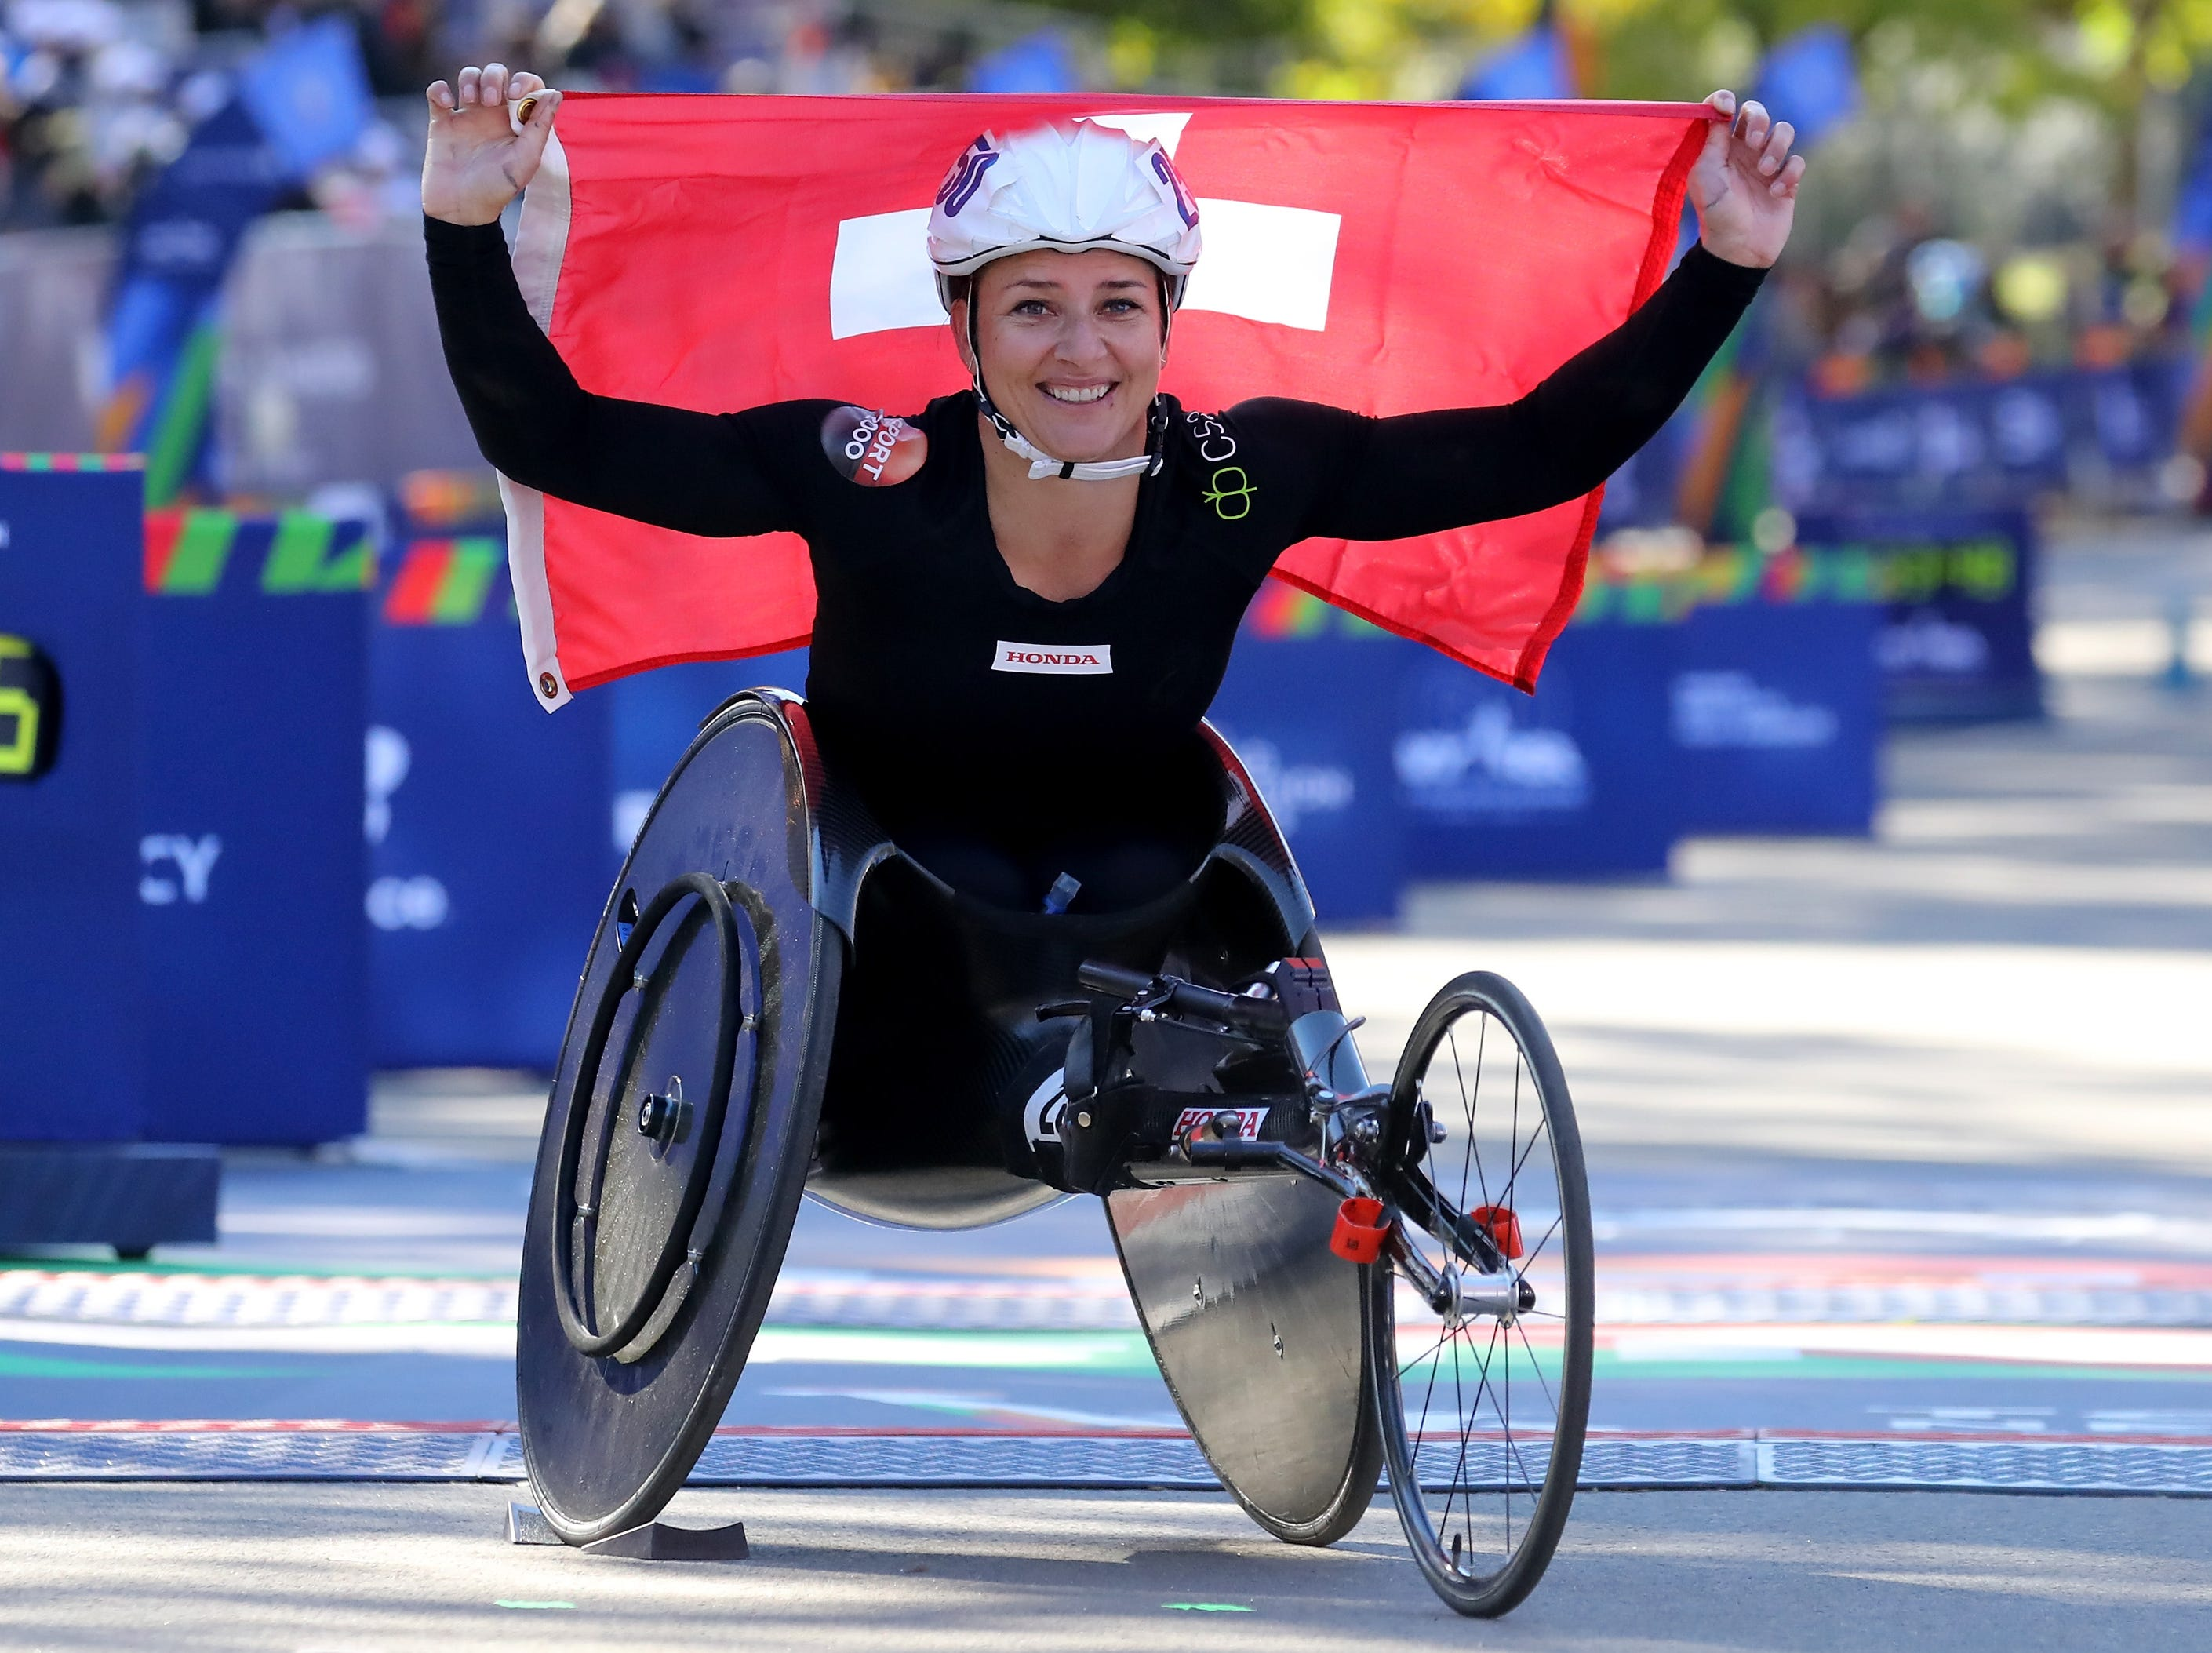 Manuela Schar of Switzerland celebrates her victory in the women's wheelchair division during the 2018 TCS New York City Marathon on Nov. 4.